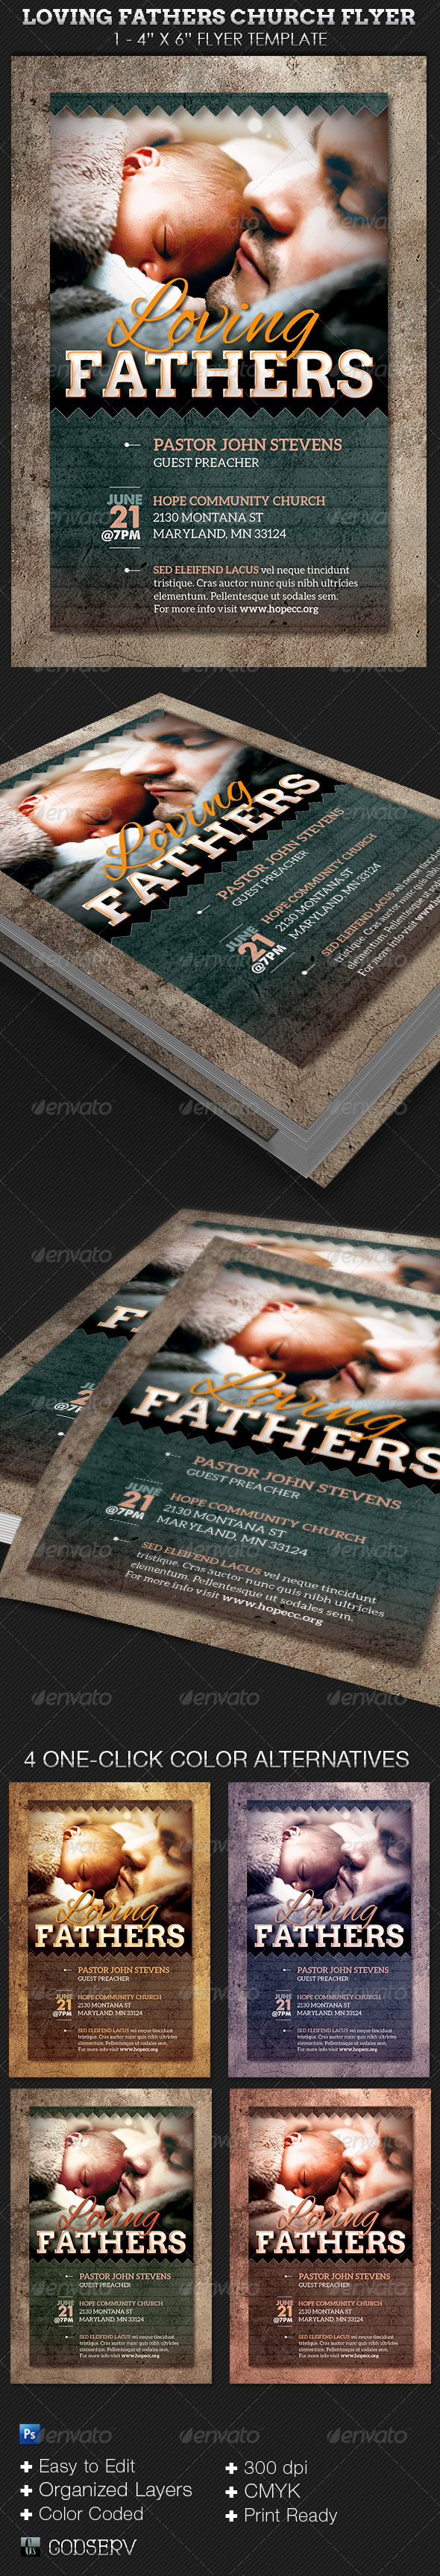 GraphicRiver Loving Fathers Church Flyer Template 6355663